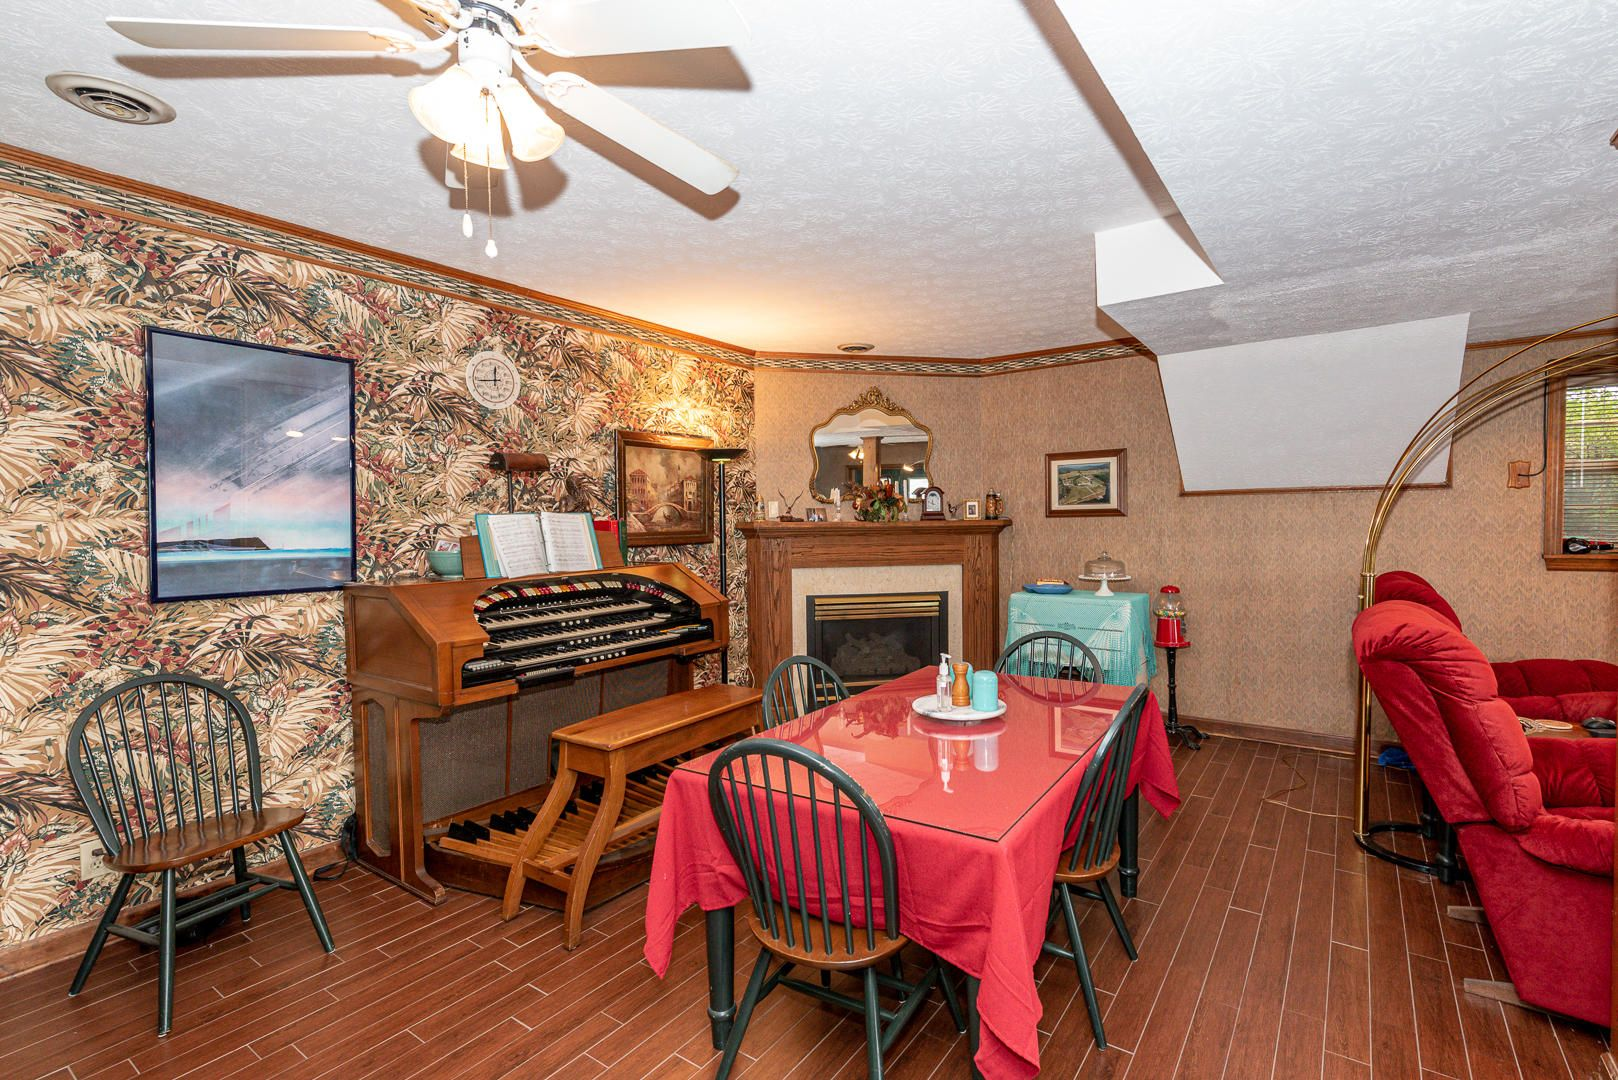 Downstairs dining area with fireplace